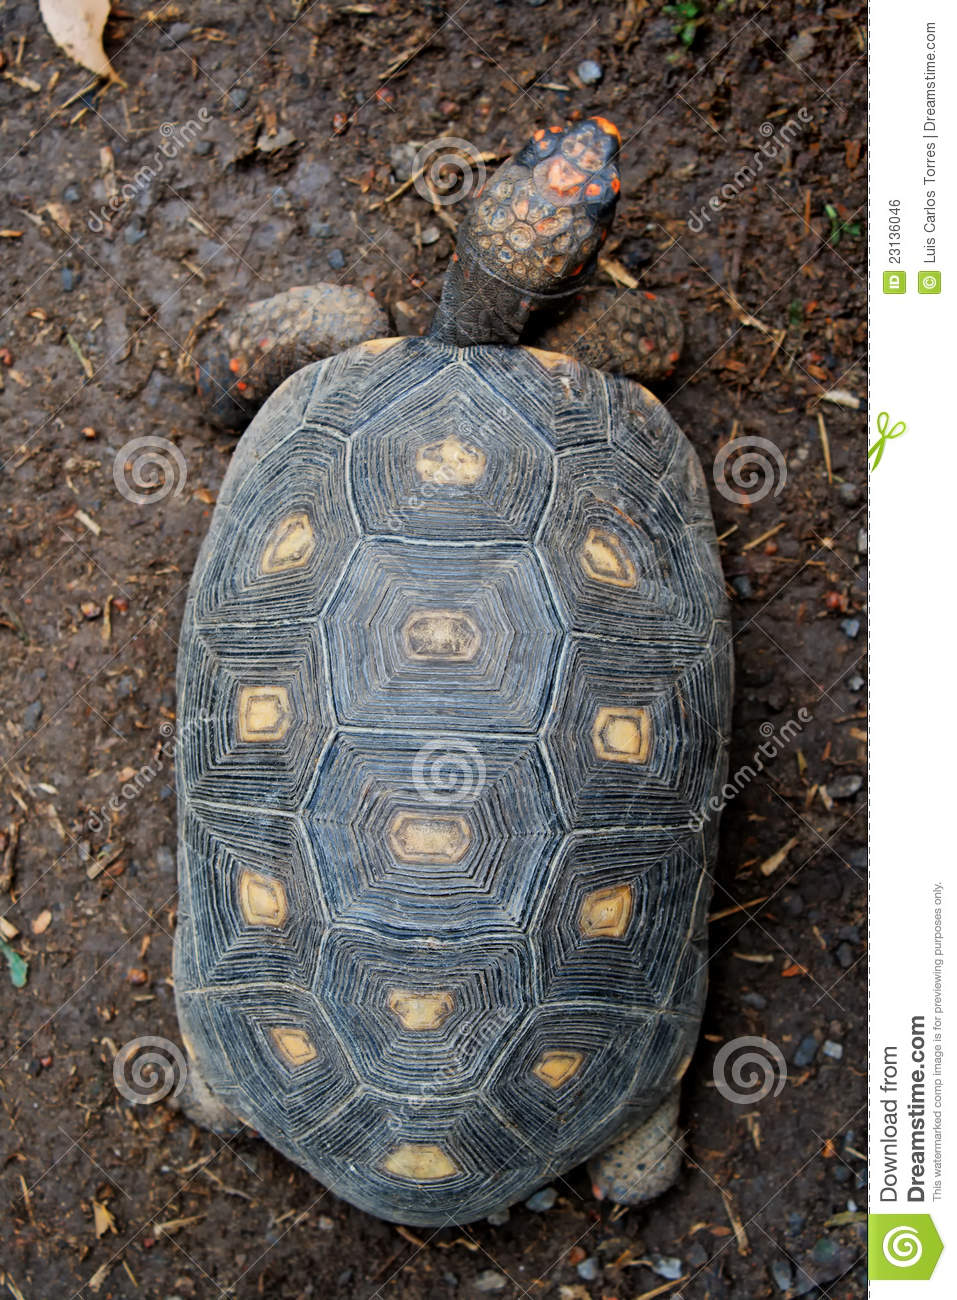 Turtle top view